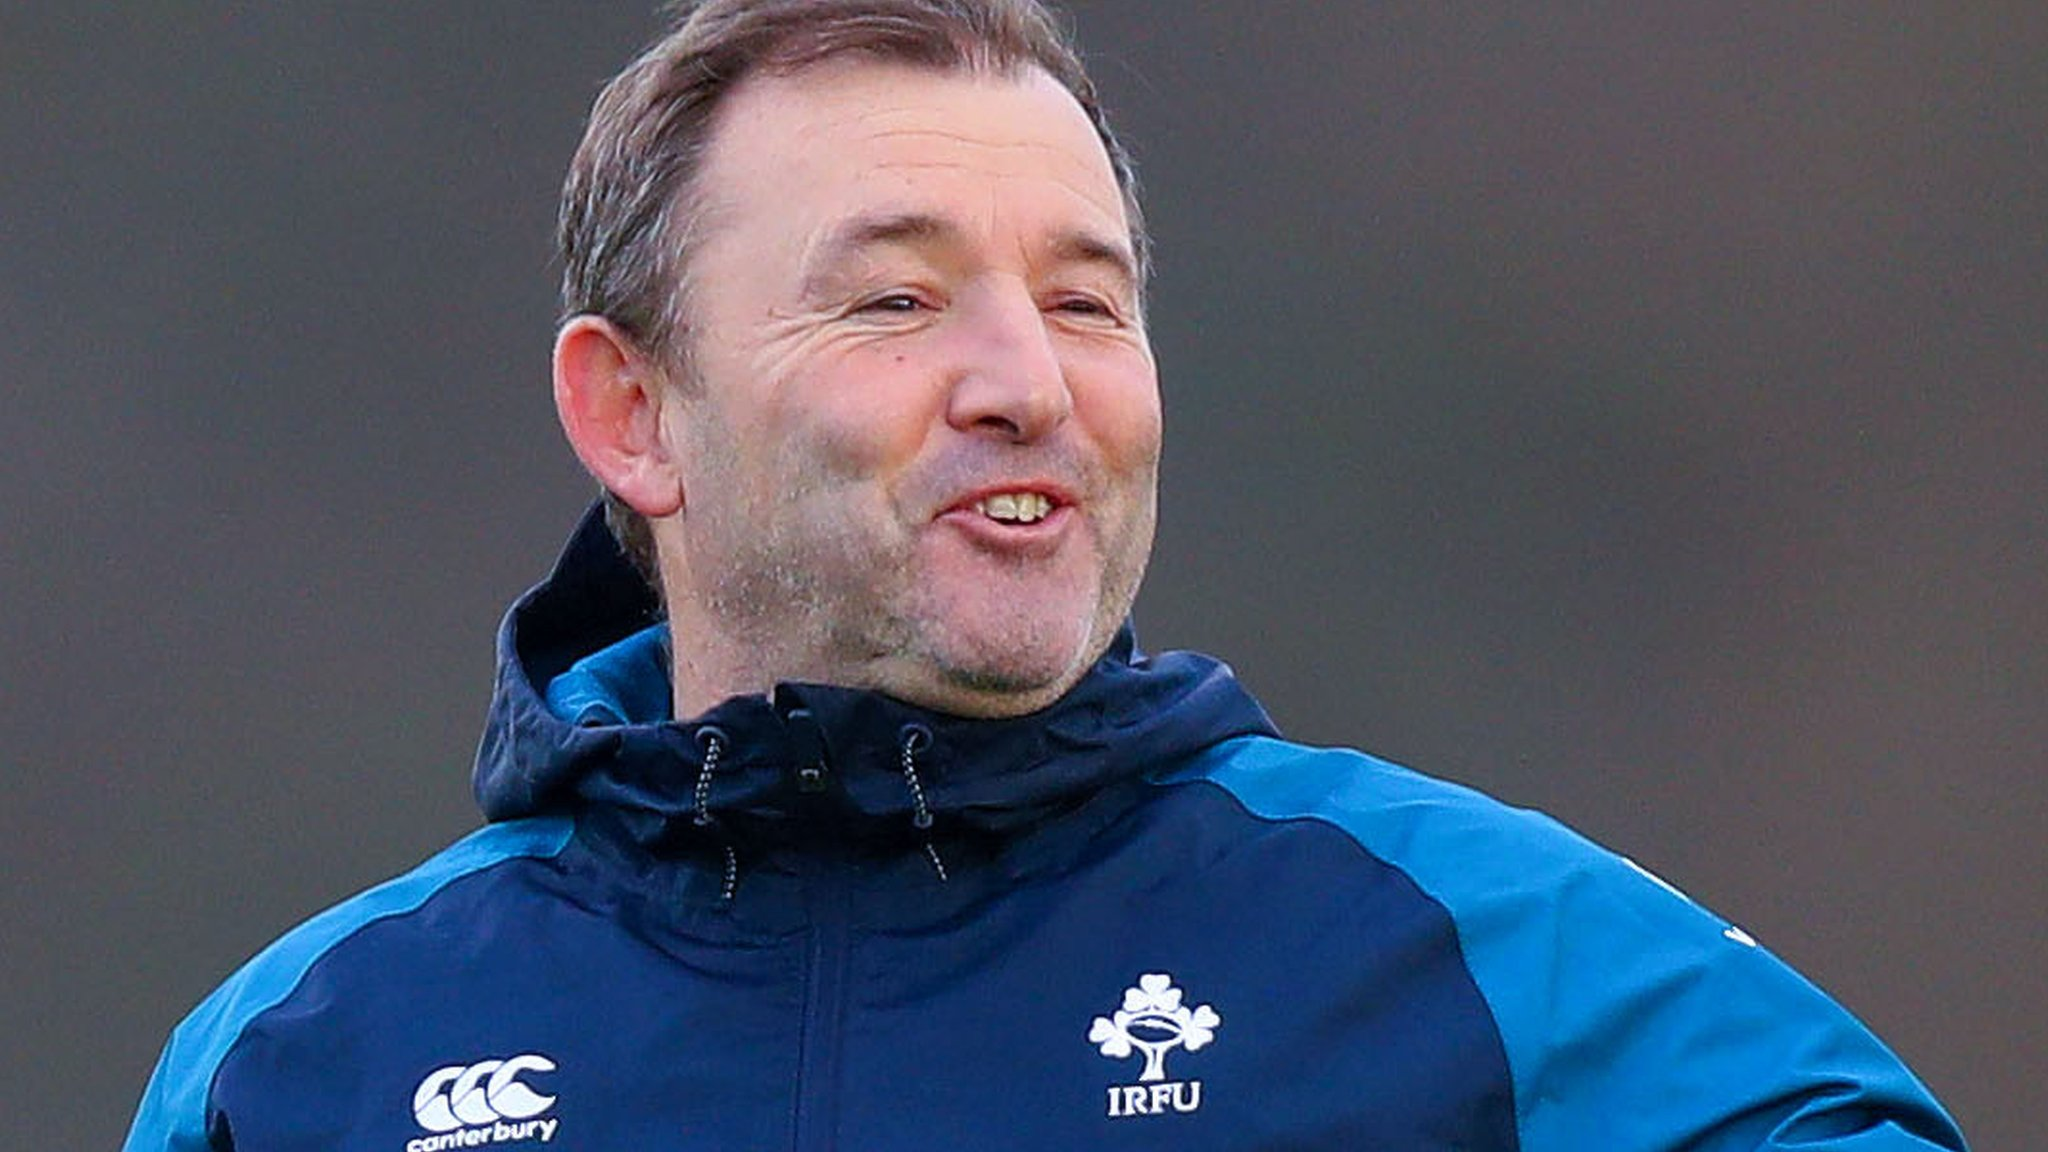 Six Nations: Ireland coach Richie Murphy calls for 'complete' performance in Italy